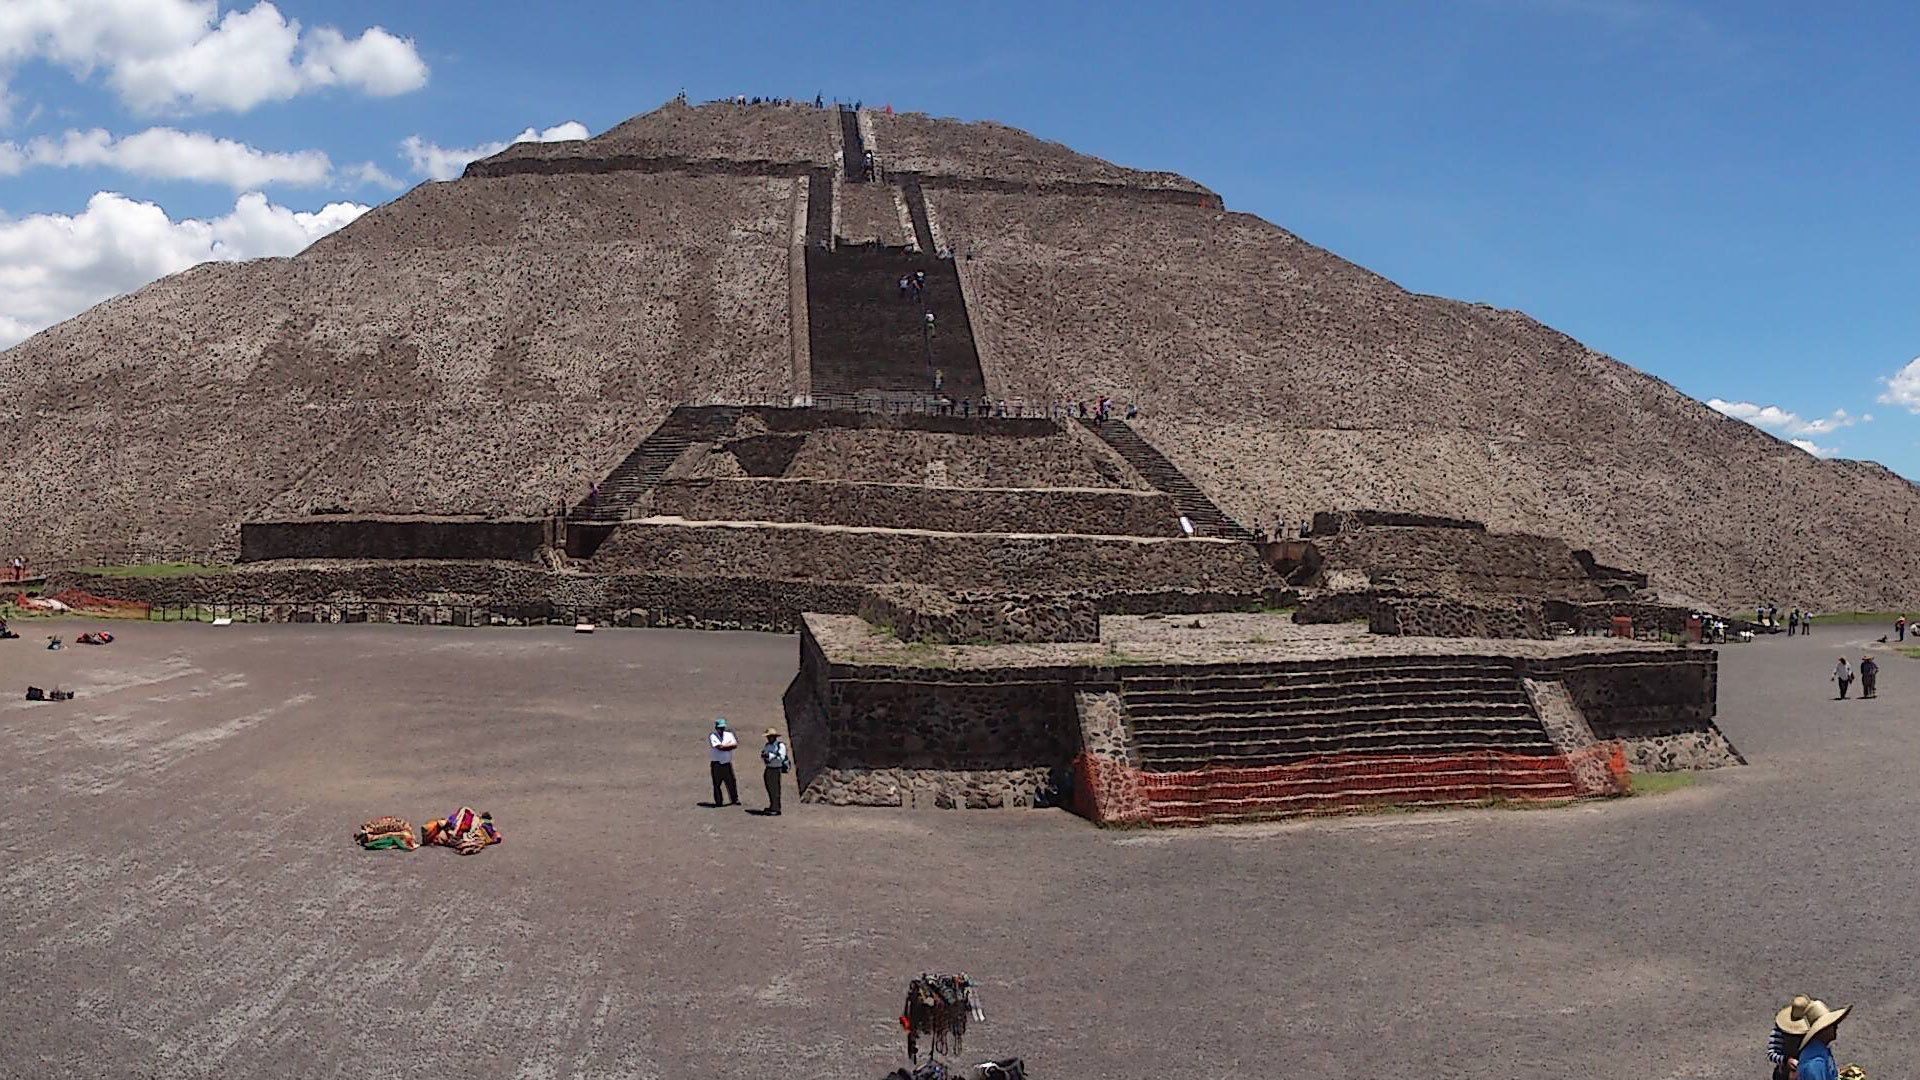 Pyramid at Teotihuacan in Mexico